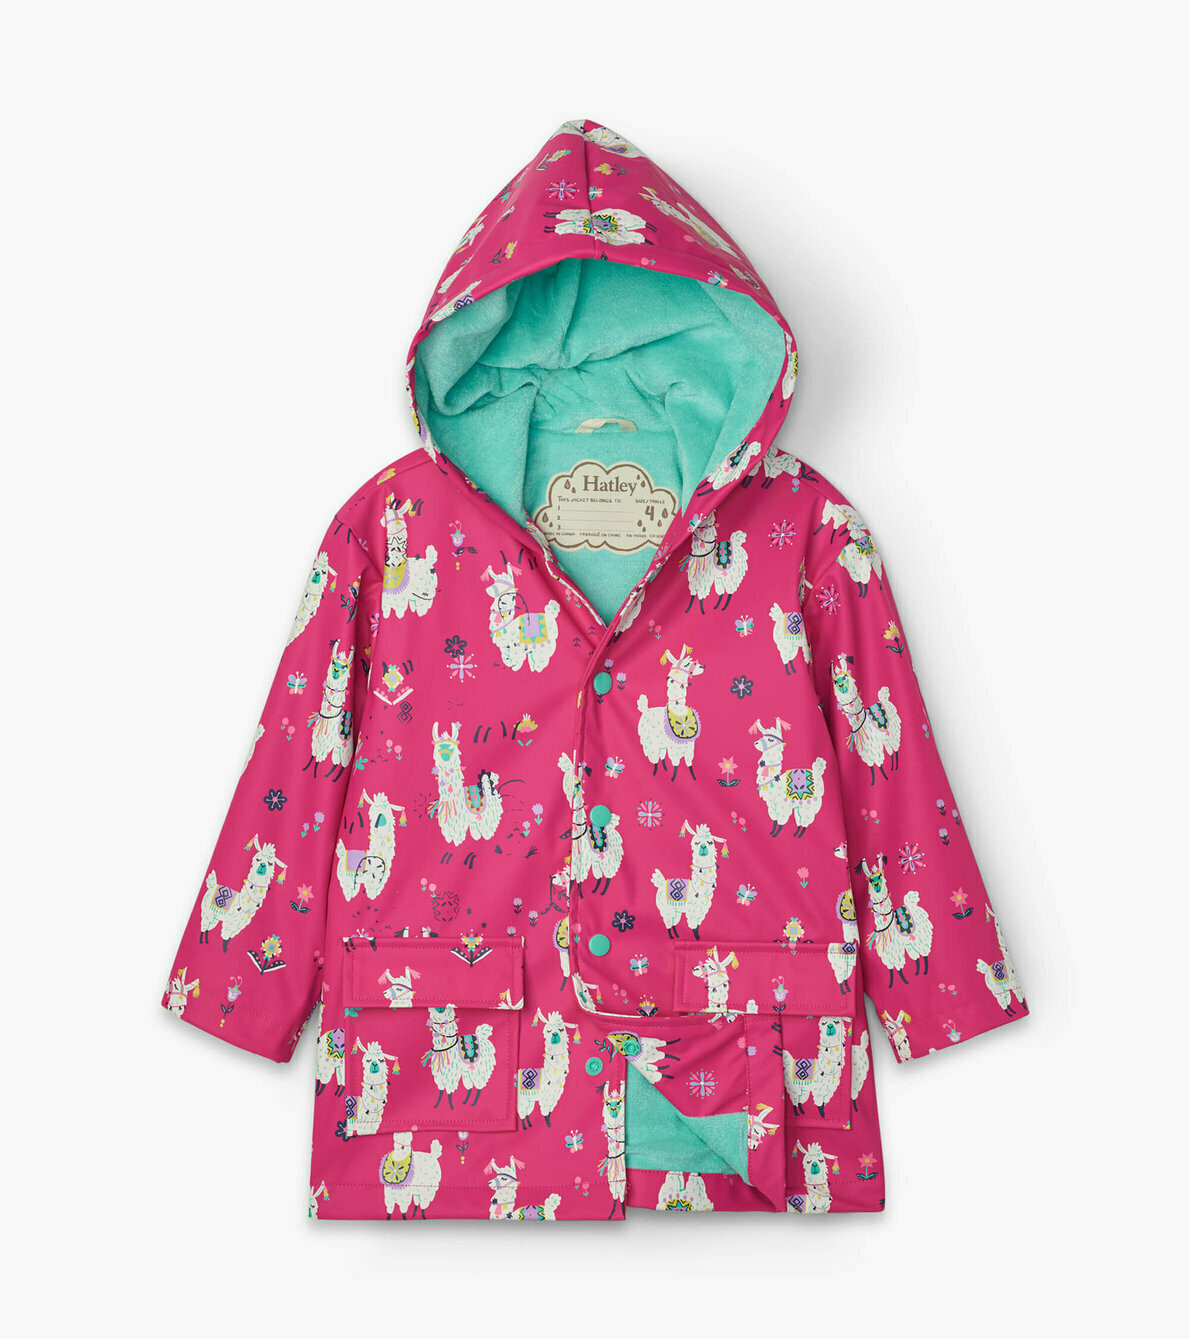 Hatley Girls AlpachasGirls RainCoat